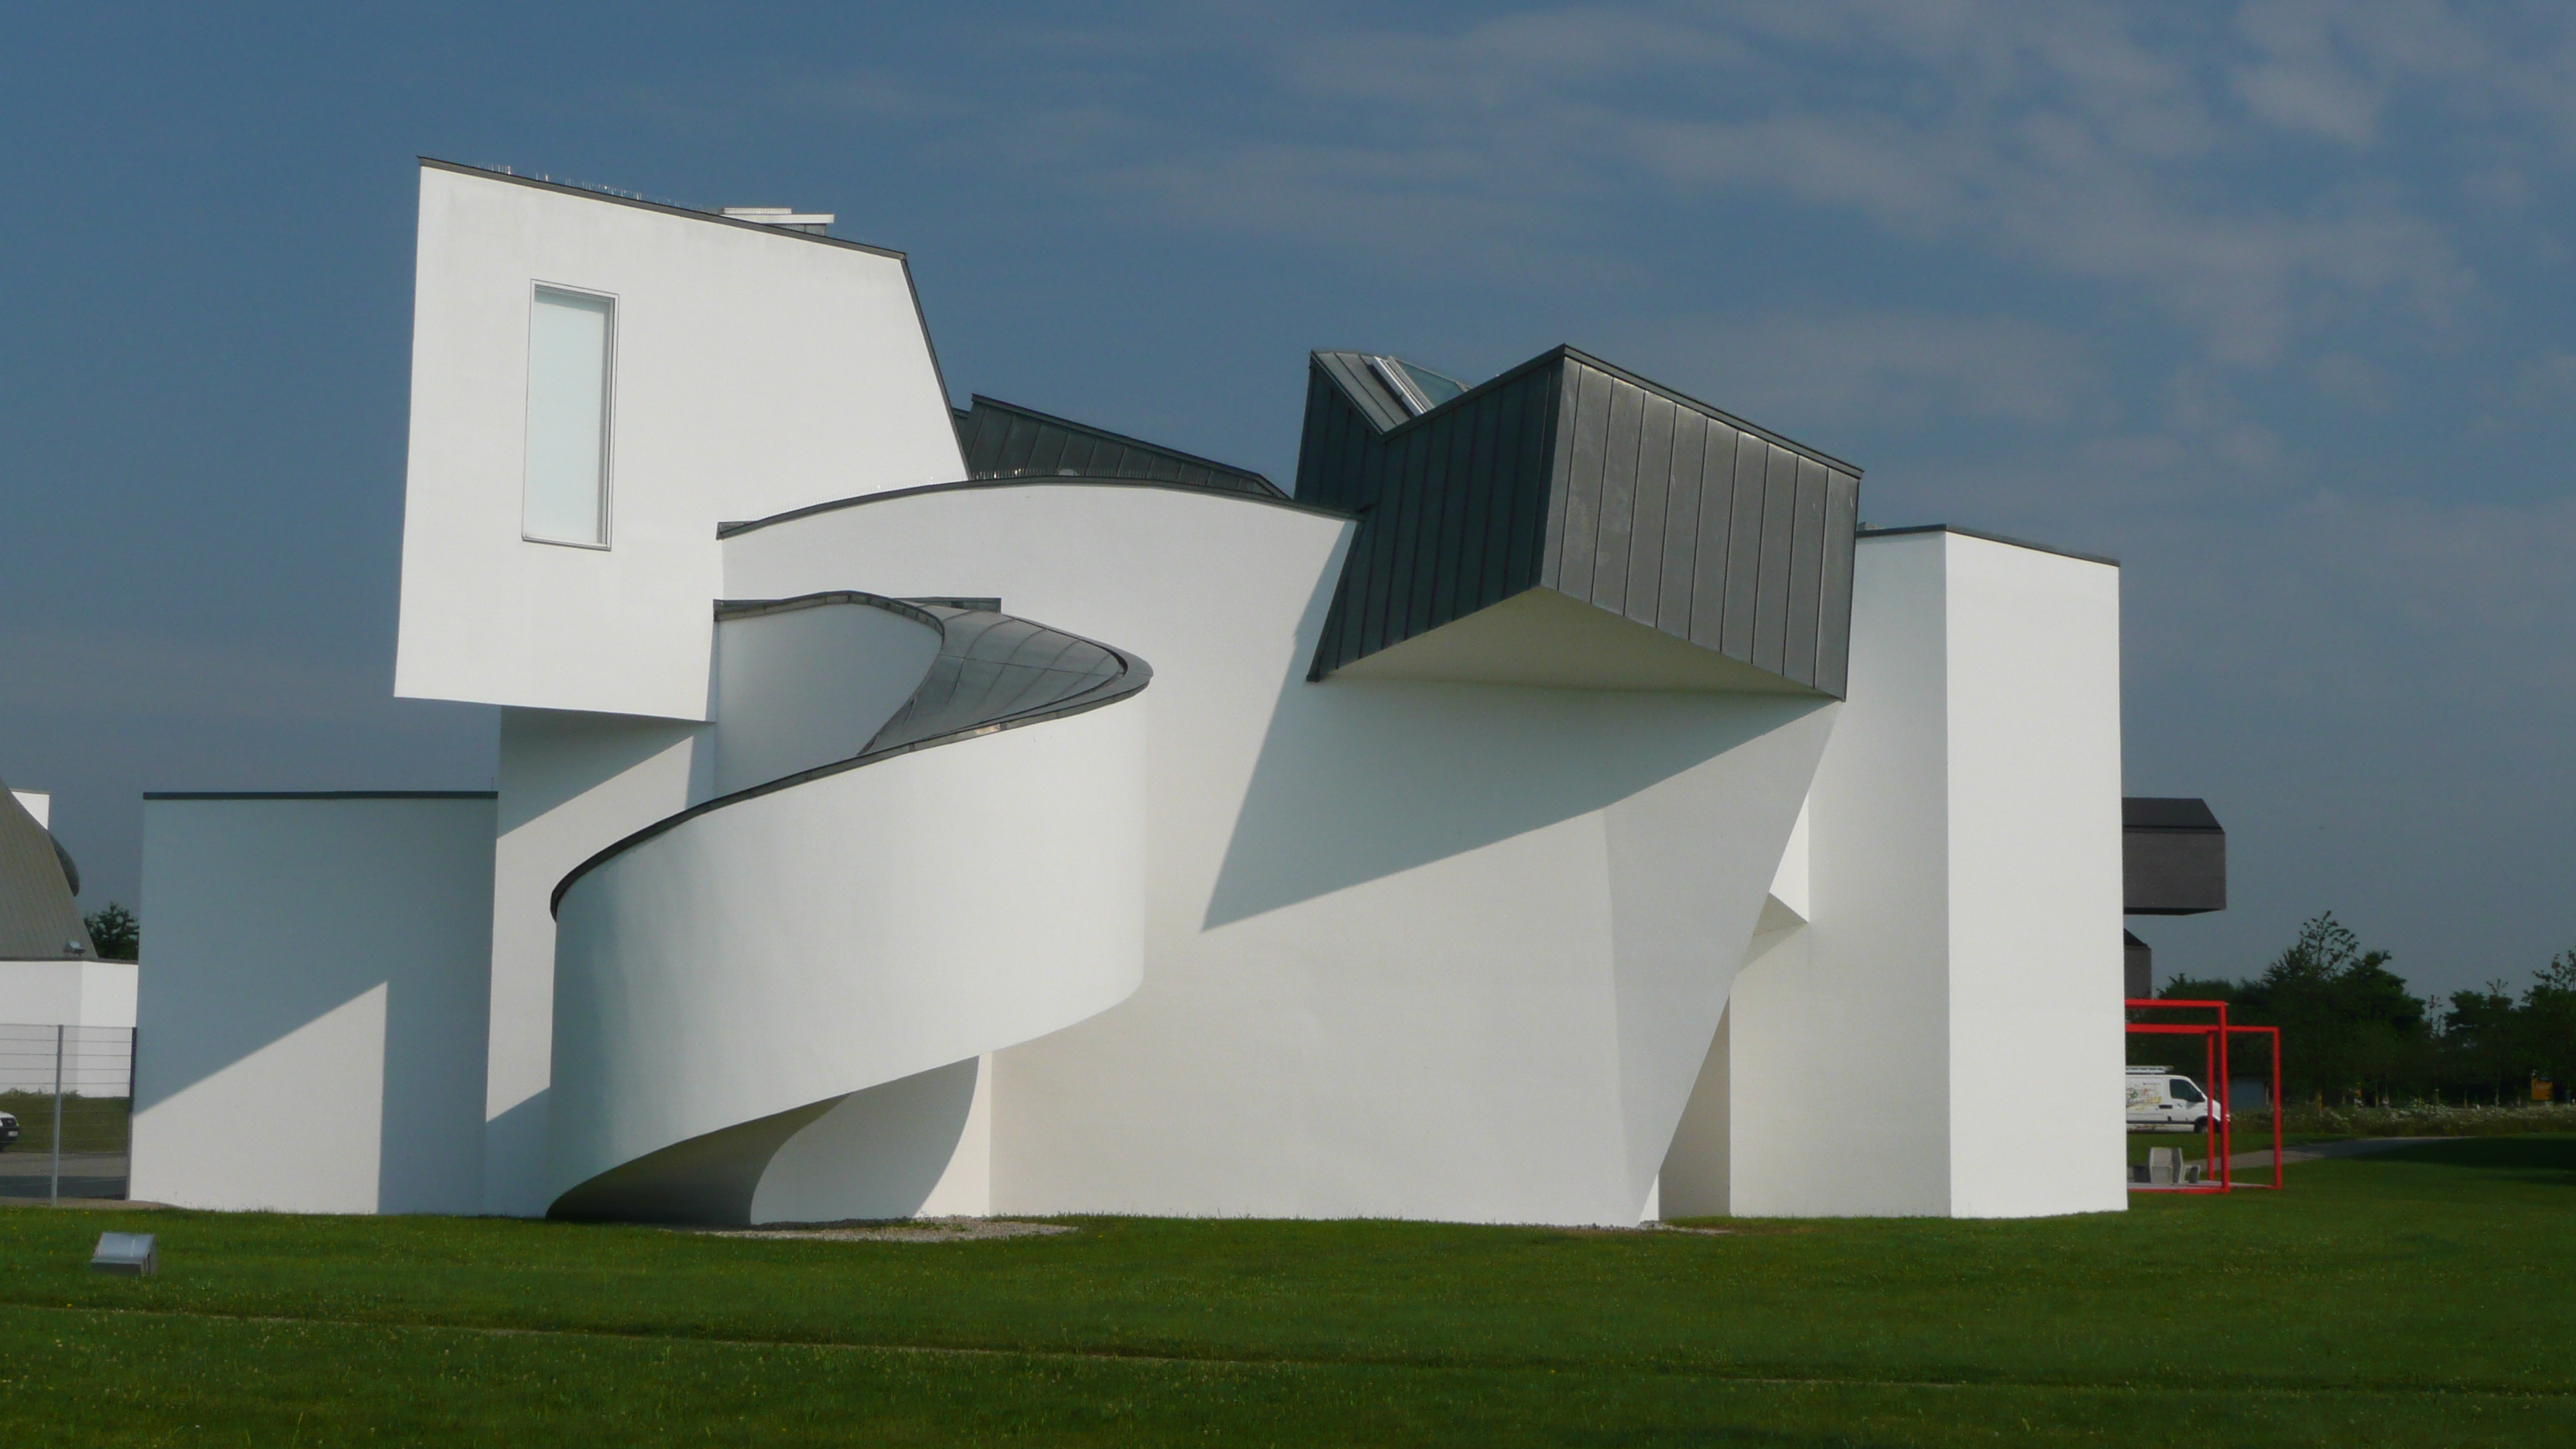 vitra design museum campus vitra weil am rhein frank gehry archeetah. Black Bedroom Furniture Sets. Home Design Ideas